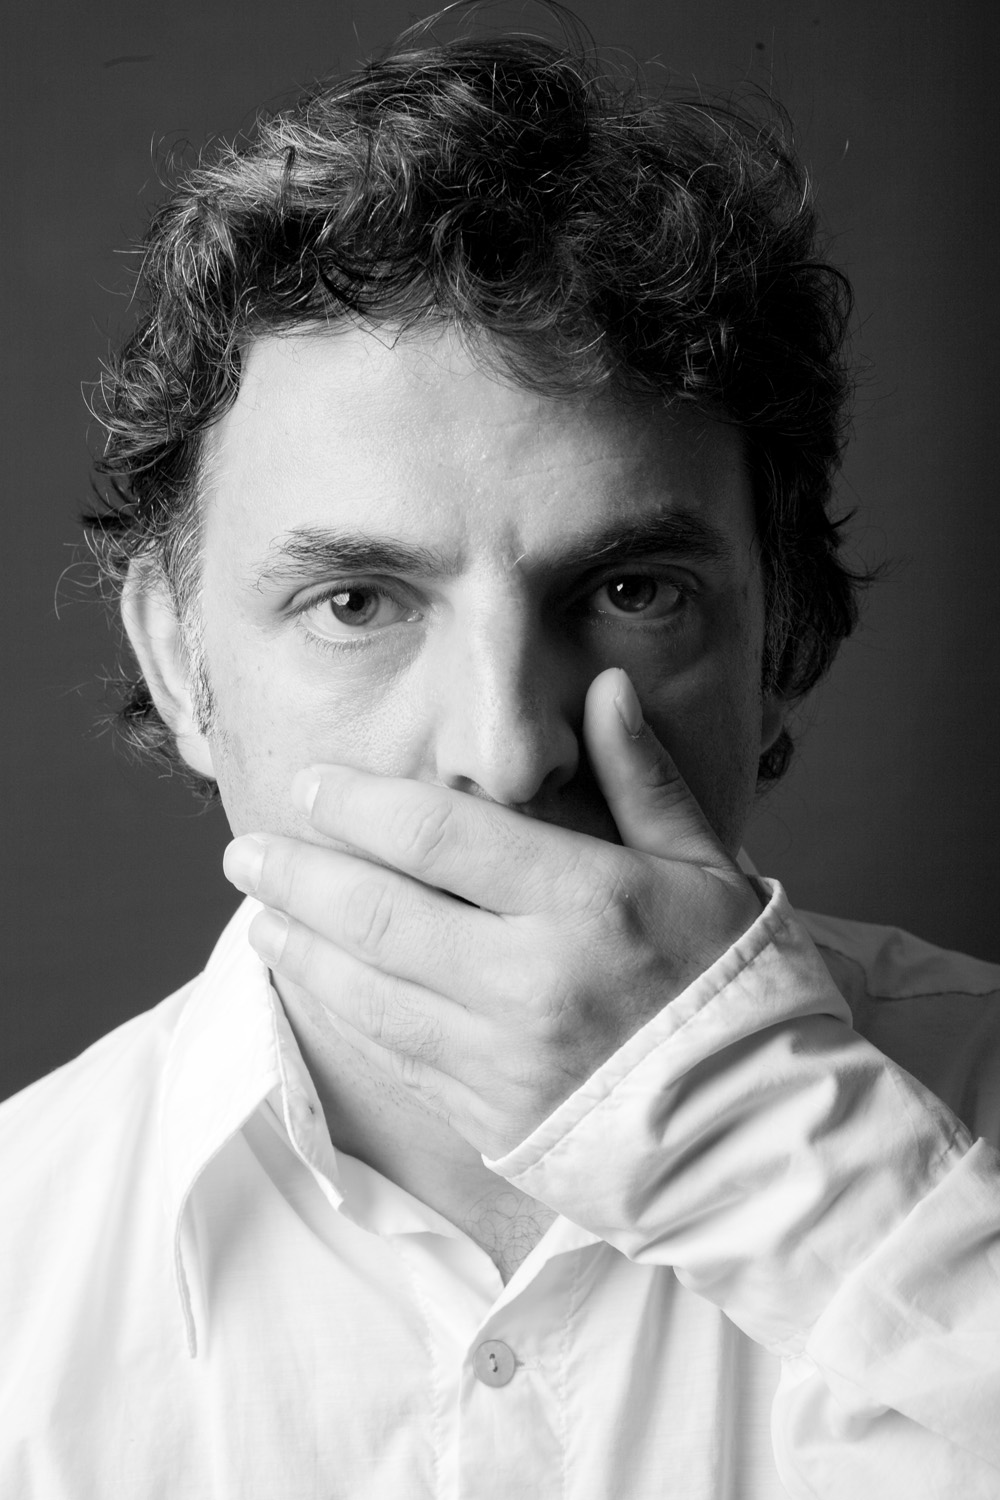 Etgar Keret (via EK News)